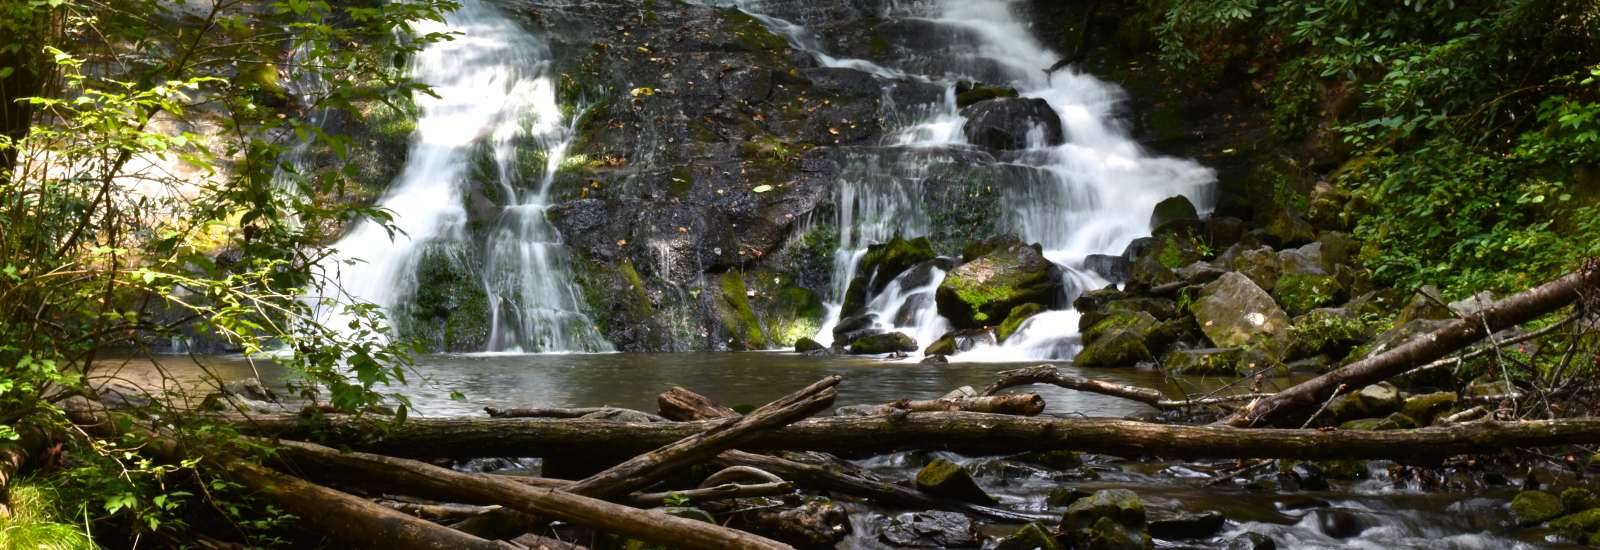 Indian Creek Falls - GSMNP